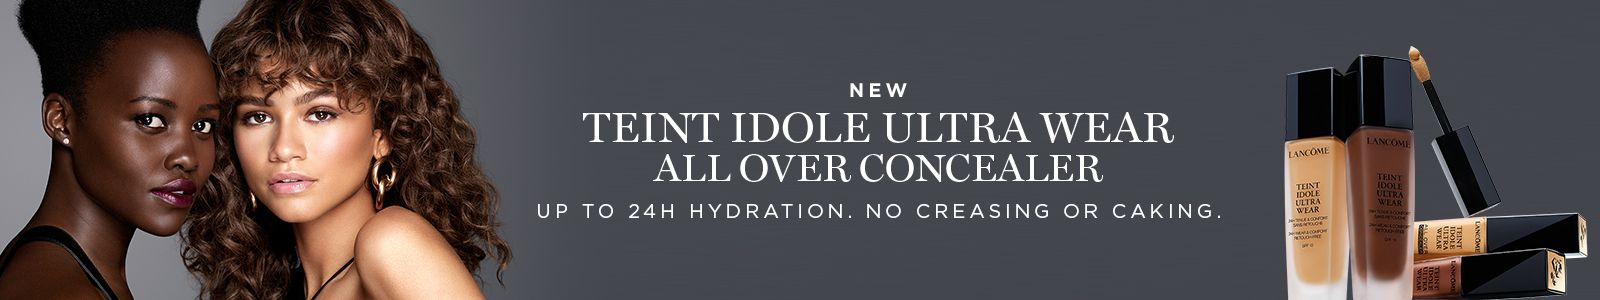 New, Teint idole ultra wear all over concealer, Up to 24h hydration, No creasing or caking